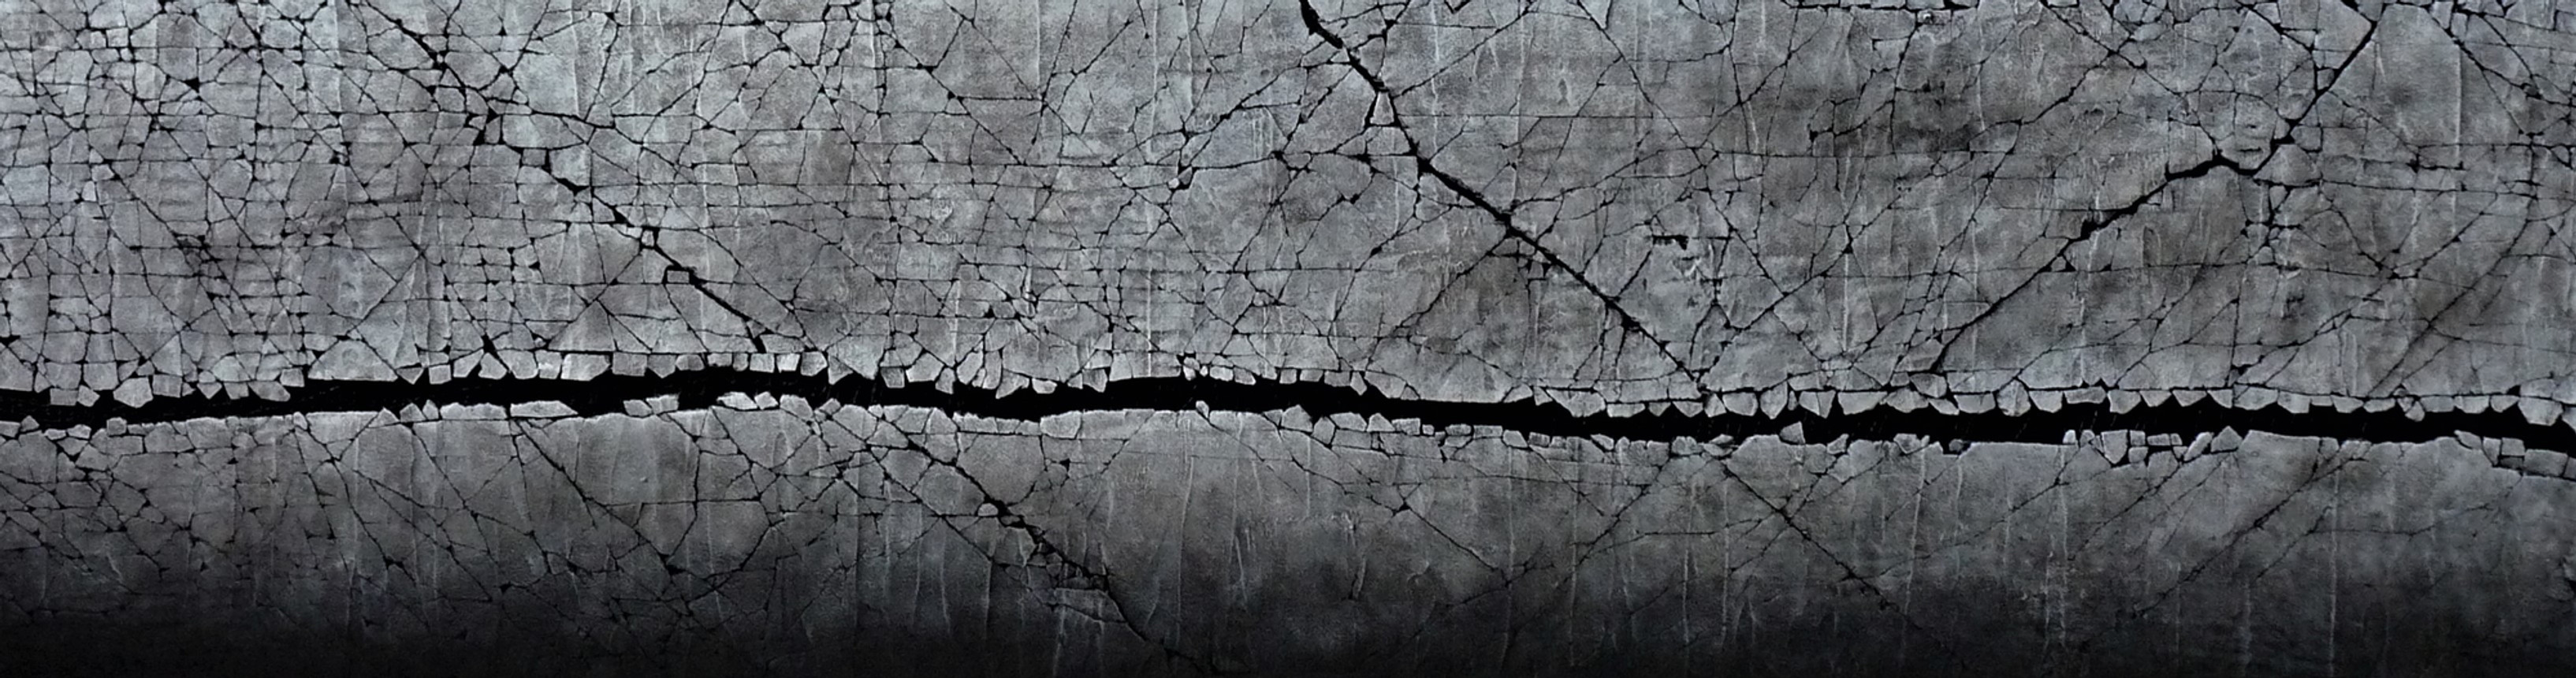 "Ebb and Flow Series: In Darkness, there is Light. Mixed media. 18"" x 65"". 2020 PRICE:  $3200.00 AVAILABLE at The Effusion Gallery and Glass Studio"